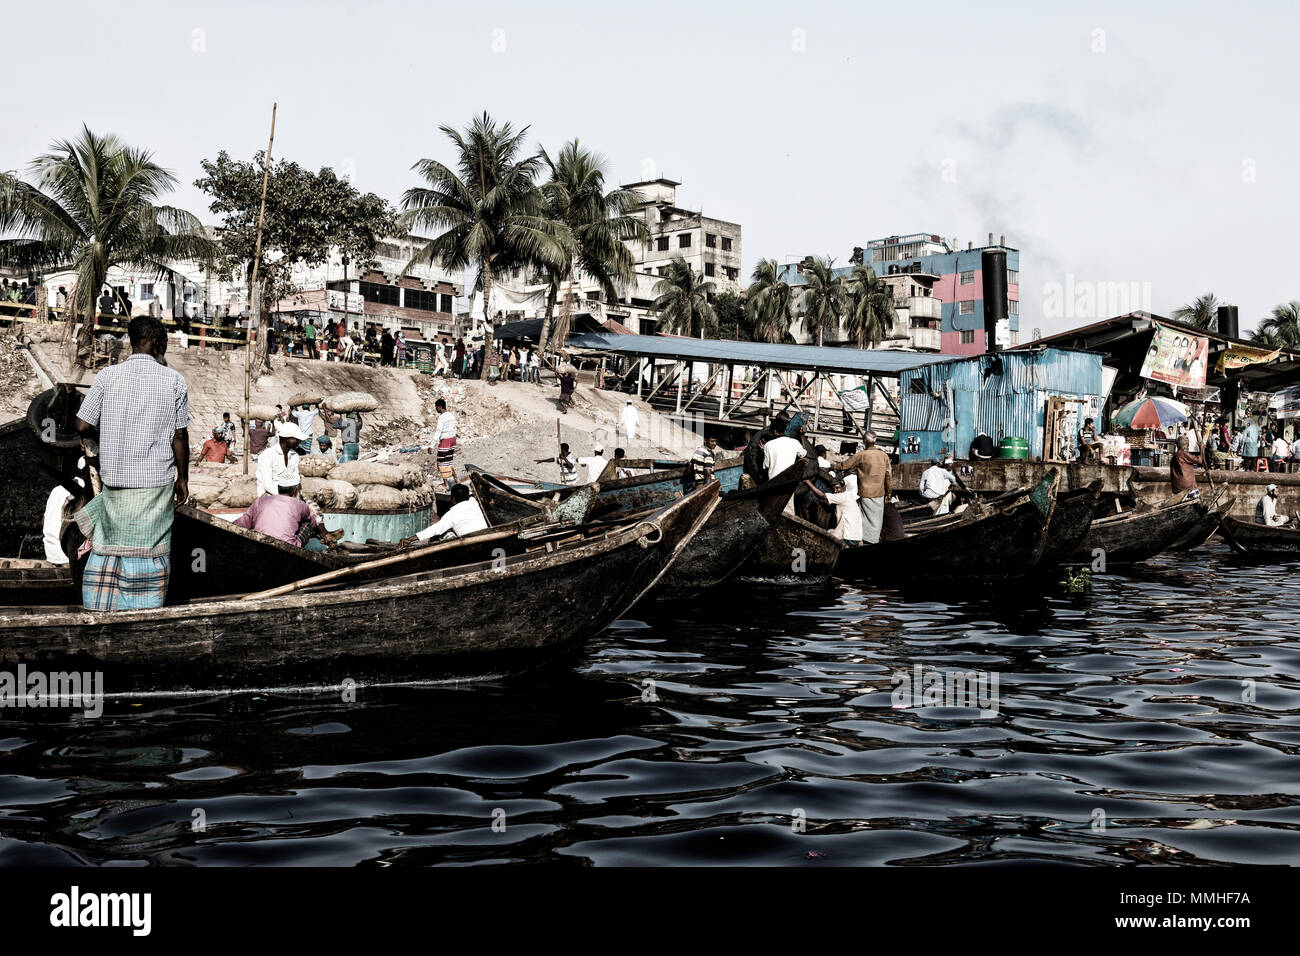 Dhaka, Bangladesh, February 24 2017: Men wait for passengers in their small rowboats at Sadarghat of the Buriganga River in Dhaka Bangladesh (Vintage  - Stock Image